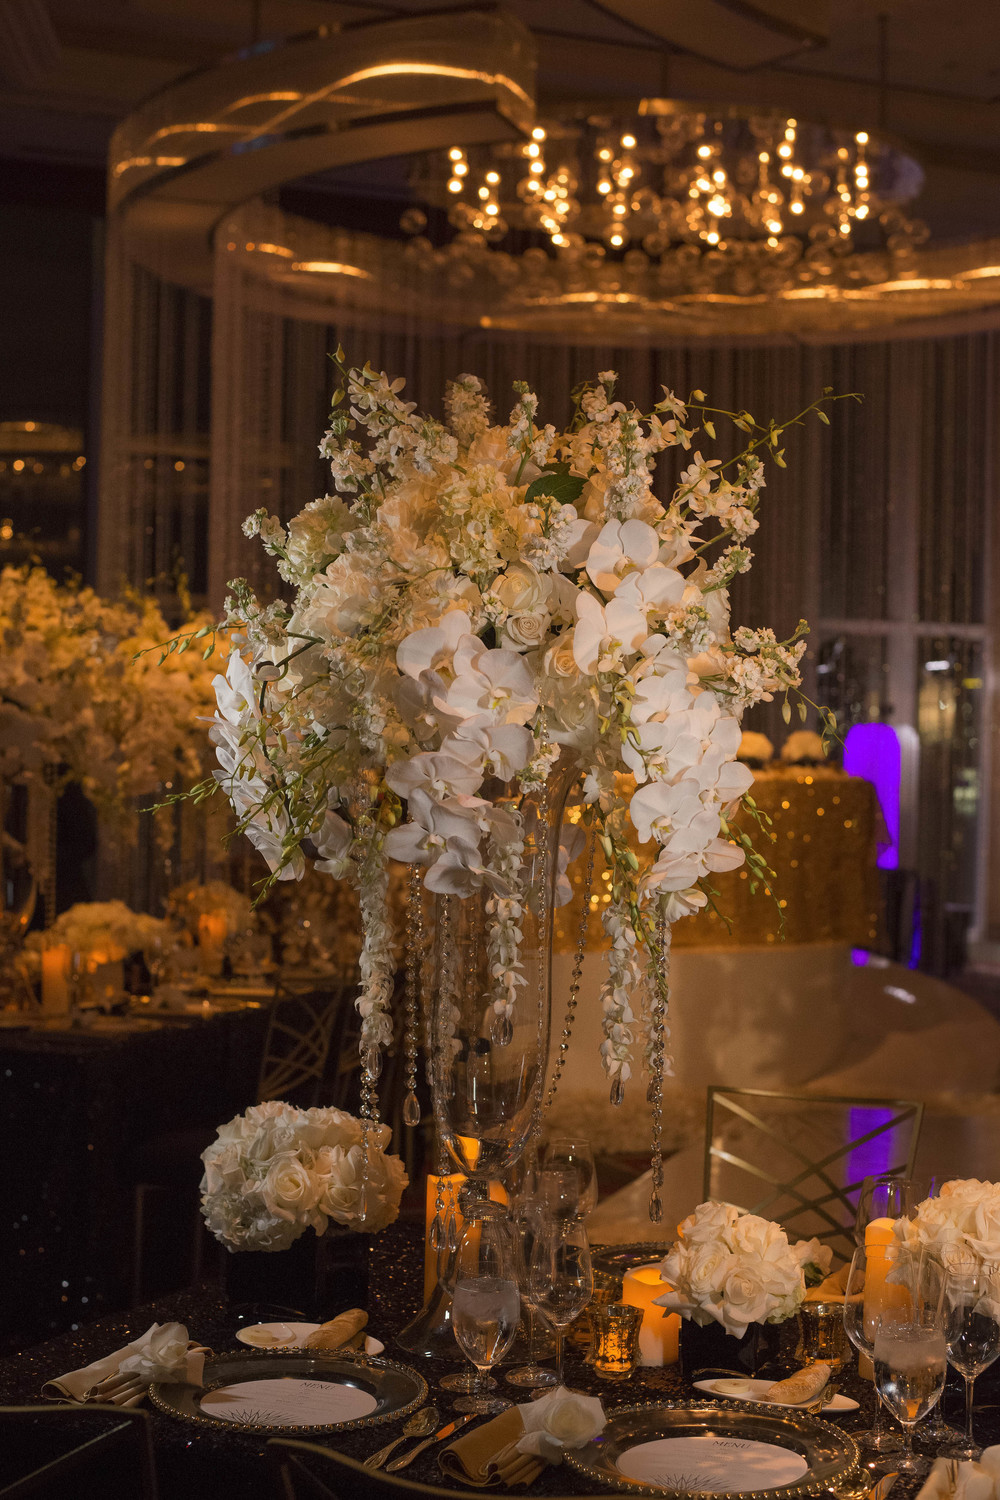 Lush white centerpieces with orchids and roses.  Credits:  Wedding Planning and Event Design by  Andrea Eppolito Events  Luxury Las Vegas Wedding held at  The Mandarin Oriental .  Florals and Decor handled by  Destinations by Design .  Photography by  AltF Photography .  Wedding Film and Videography by  Pure Light Creative  with Music and Entertainment by  Mike Fox & Company .  Hair and Make Up by  Your Beauty Call .  Photo Booth and Video Screen by  The Joy Squad .    Stationery by  Laura Damiano Designs .